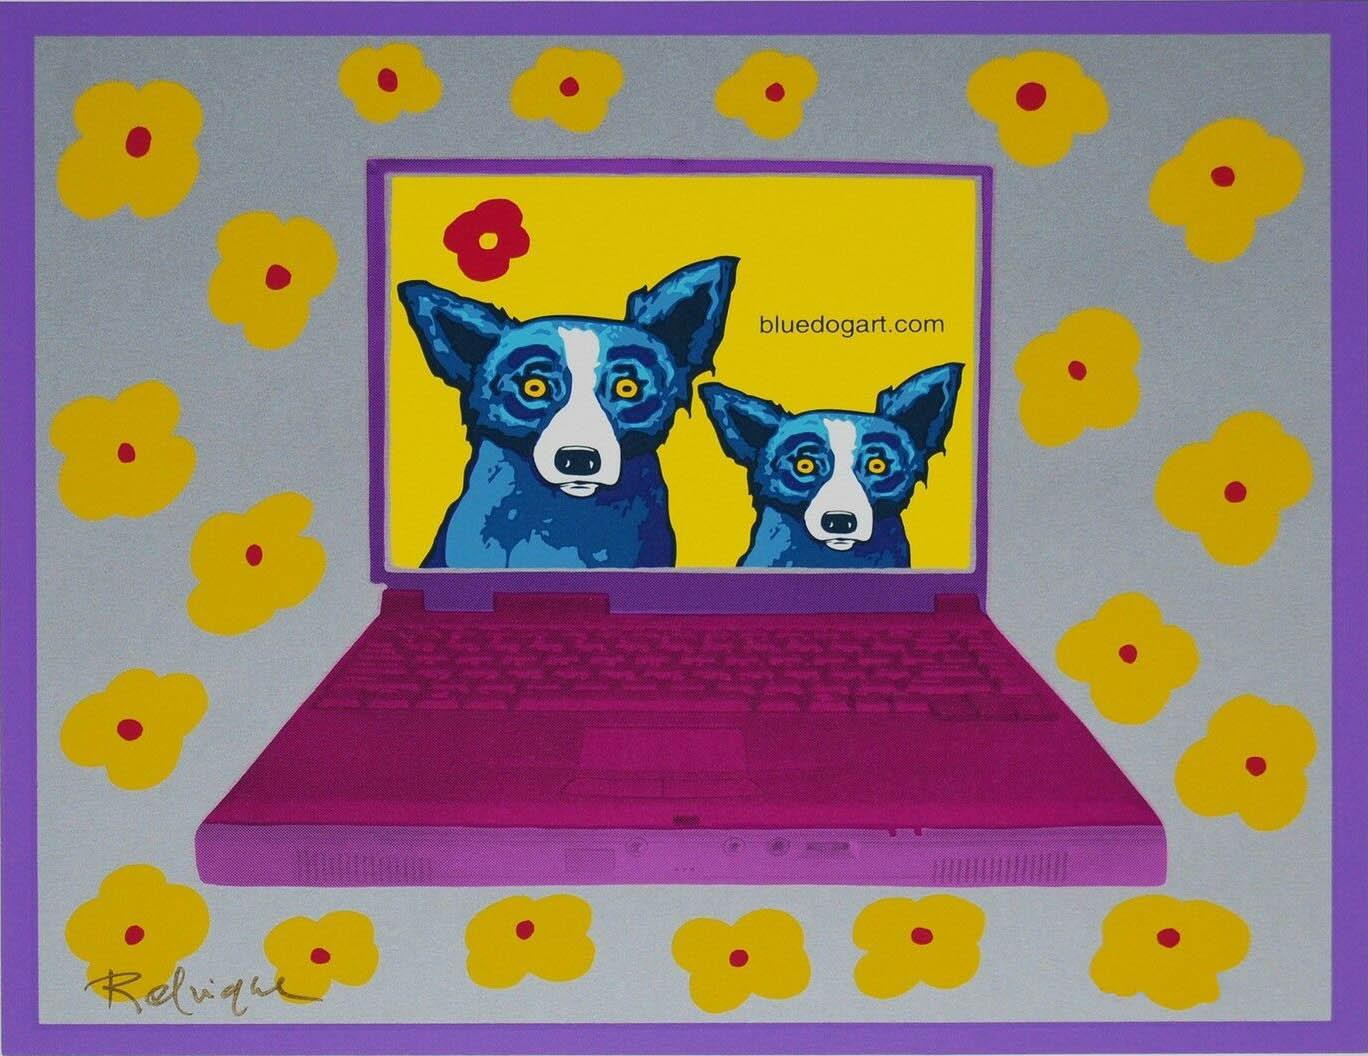 George Blue Dog Rodrigue Bluedogart Com Flores Amarelas Home Decor pintado à mão HD Imprimir pintura a óleo sobre tela Wall Art Pictures 200116